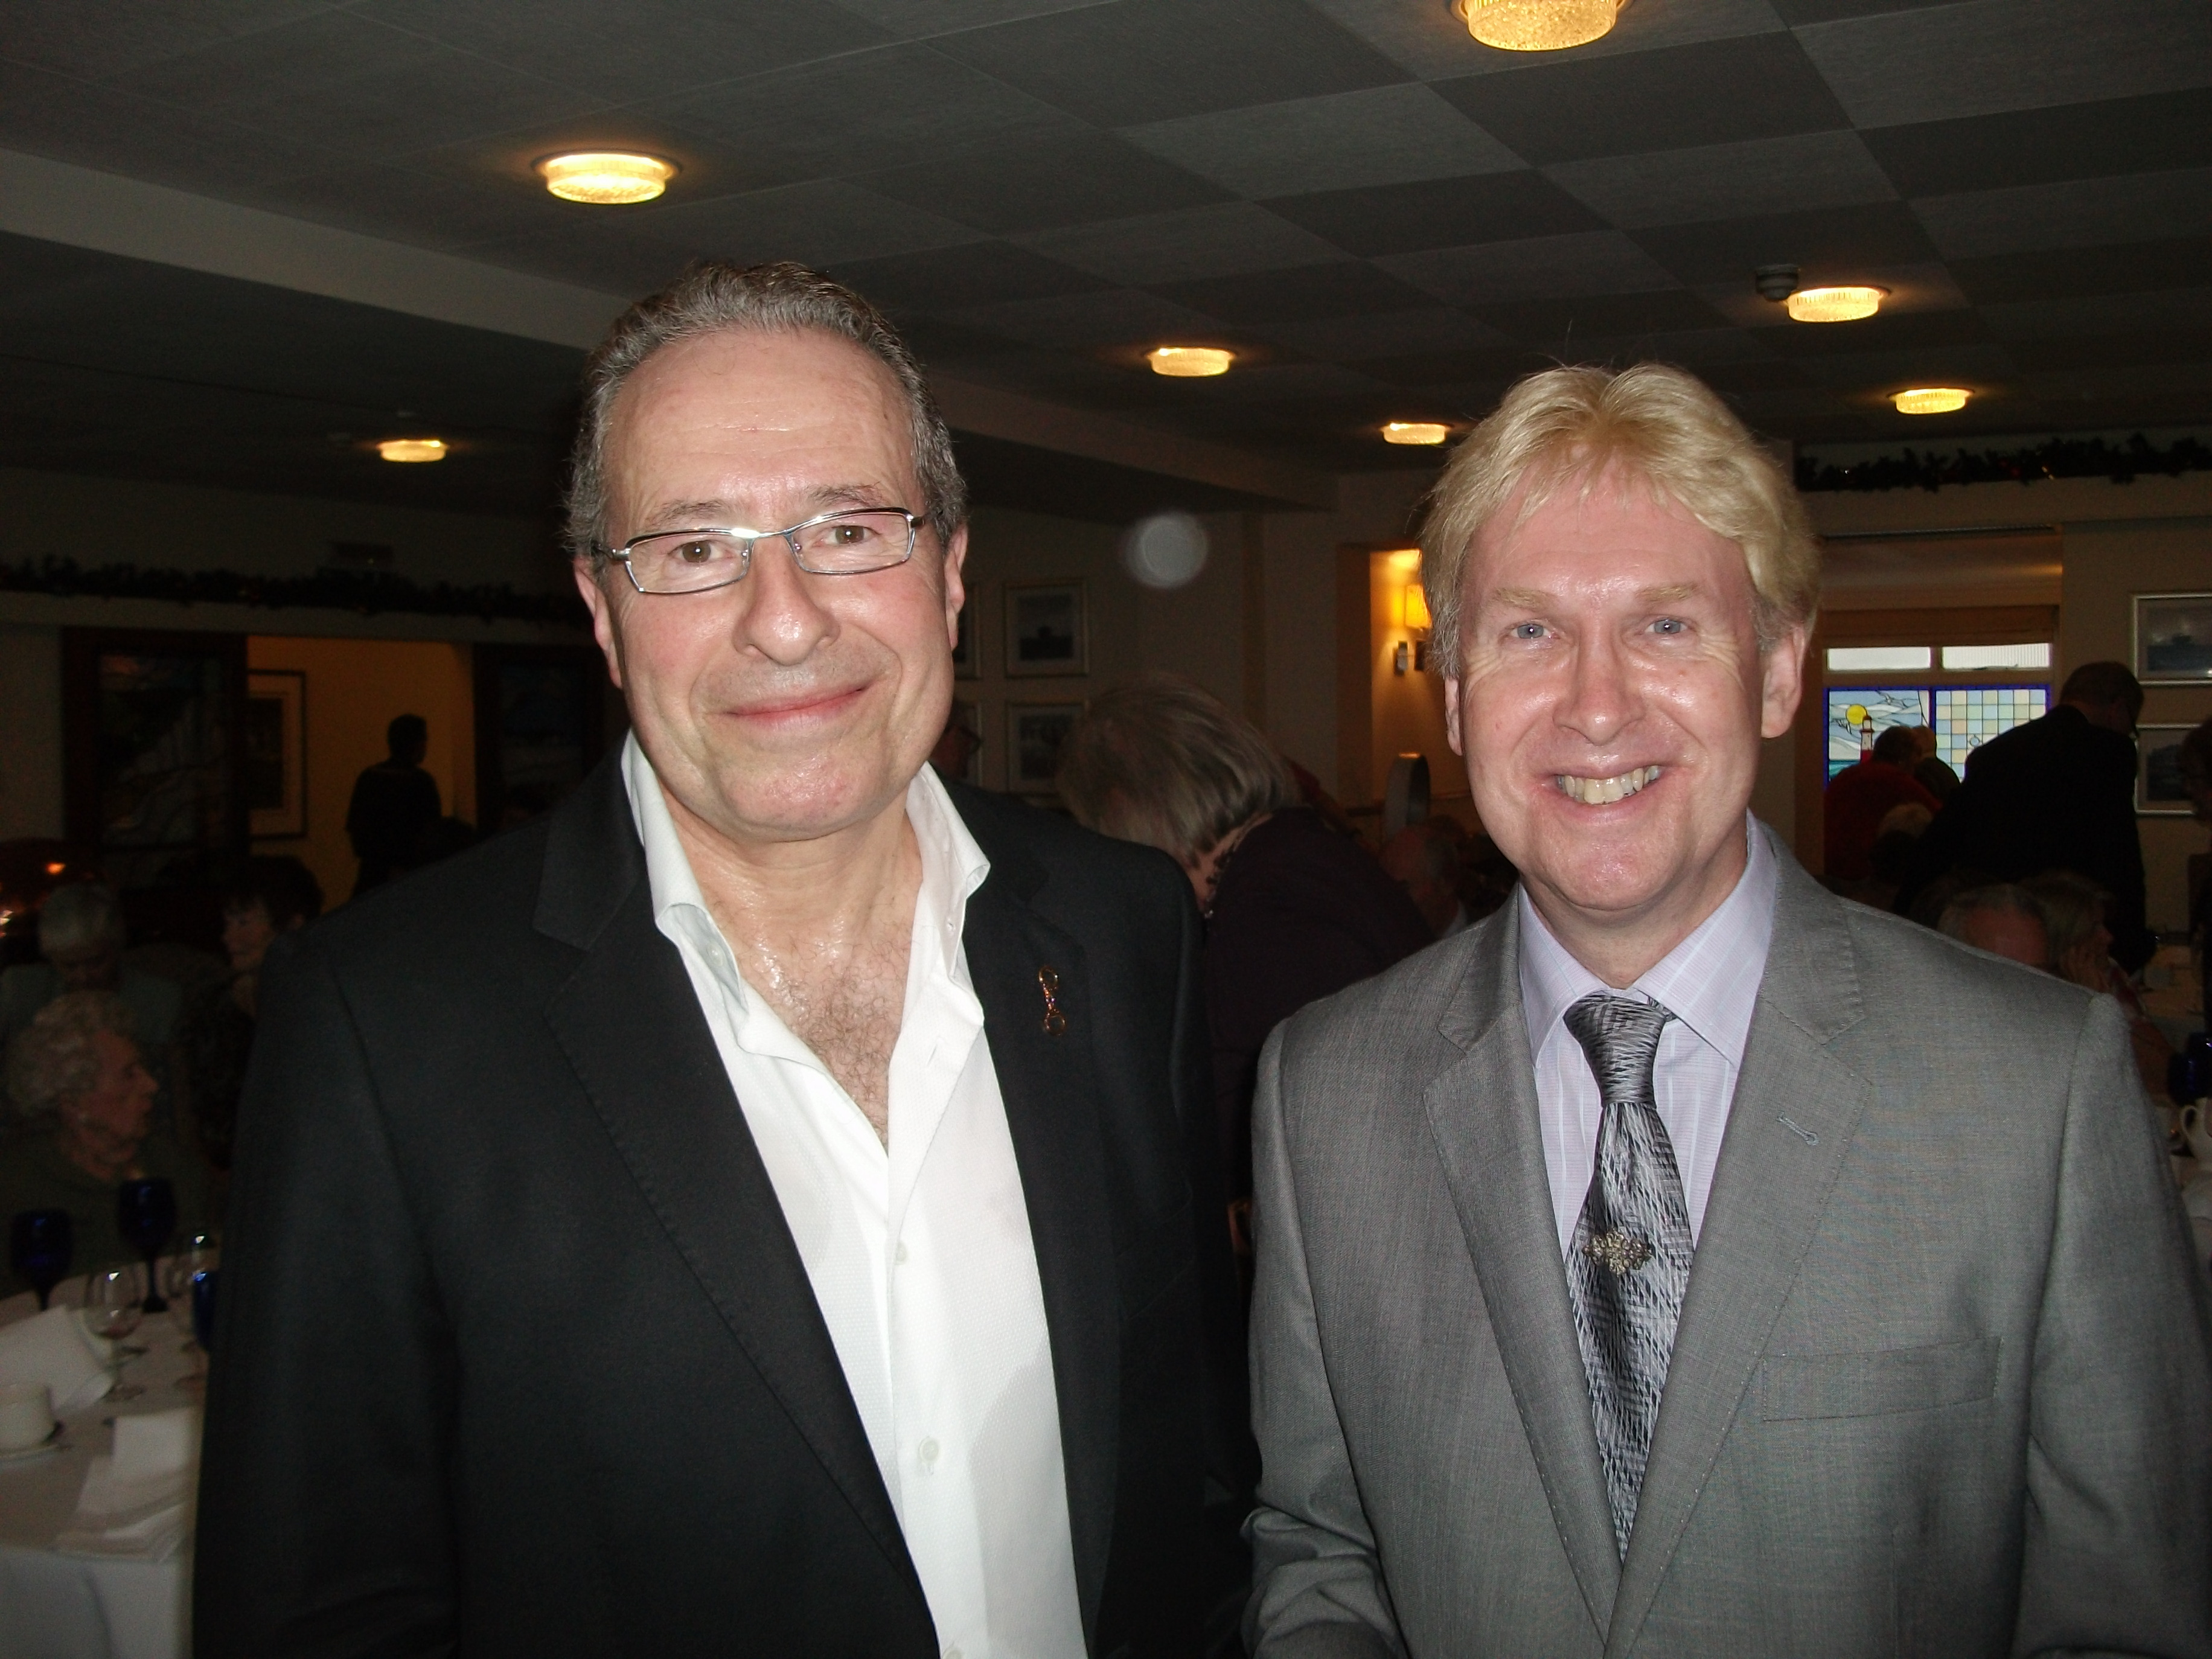 paul james a life of variety best selling crime writer peter james and paul james at a literary lunch 2012